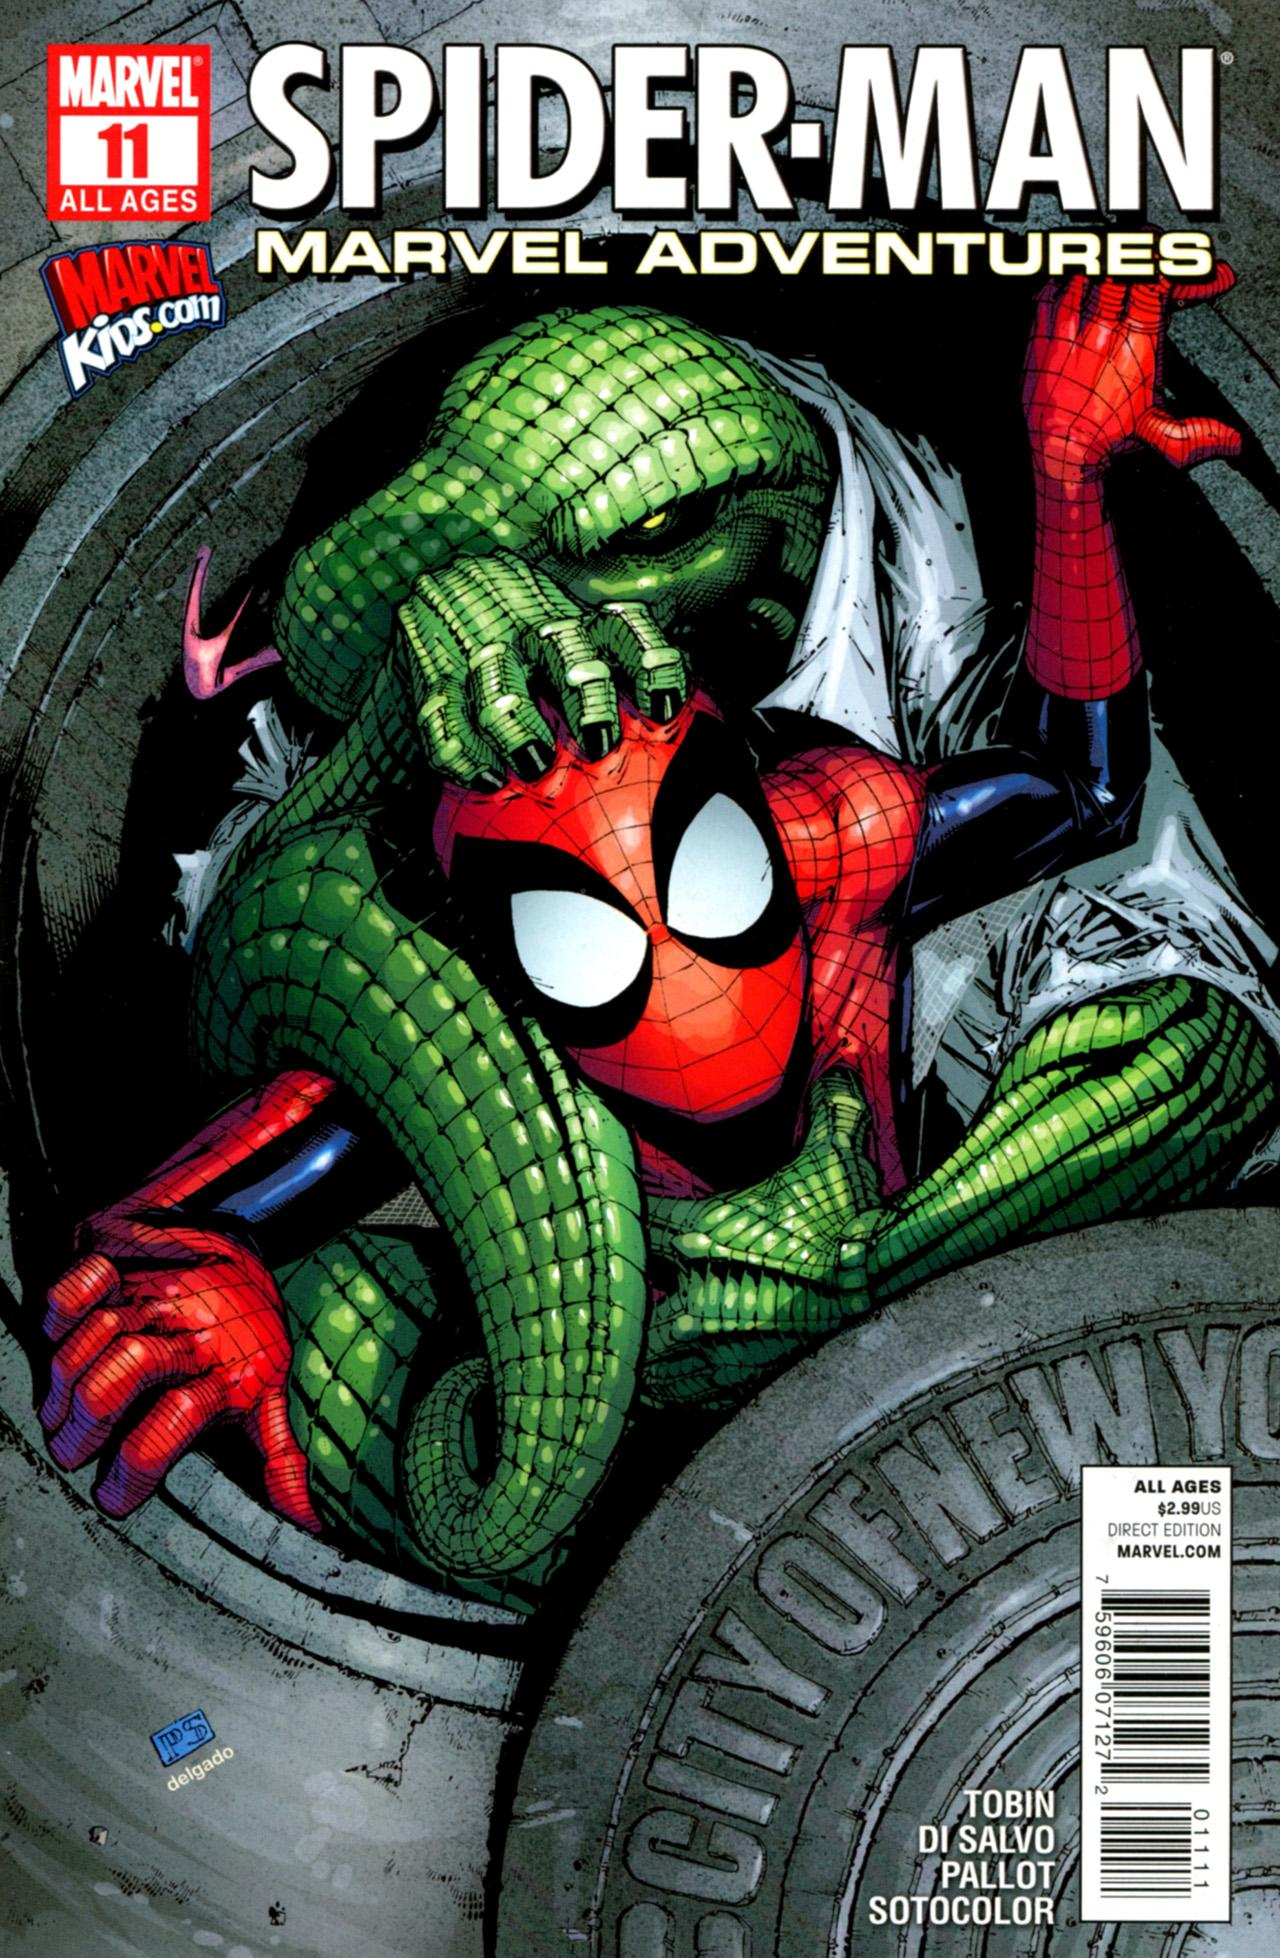 Marvel Adventures: Spider-Man Vol 2 11